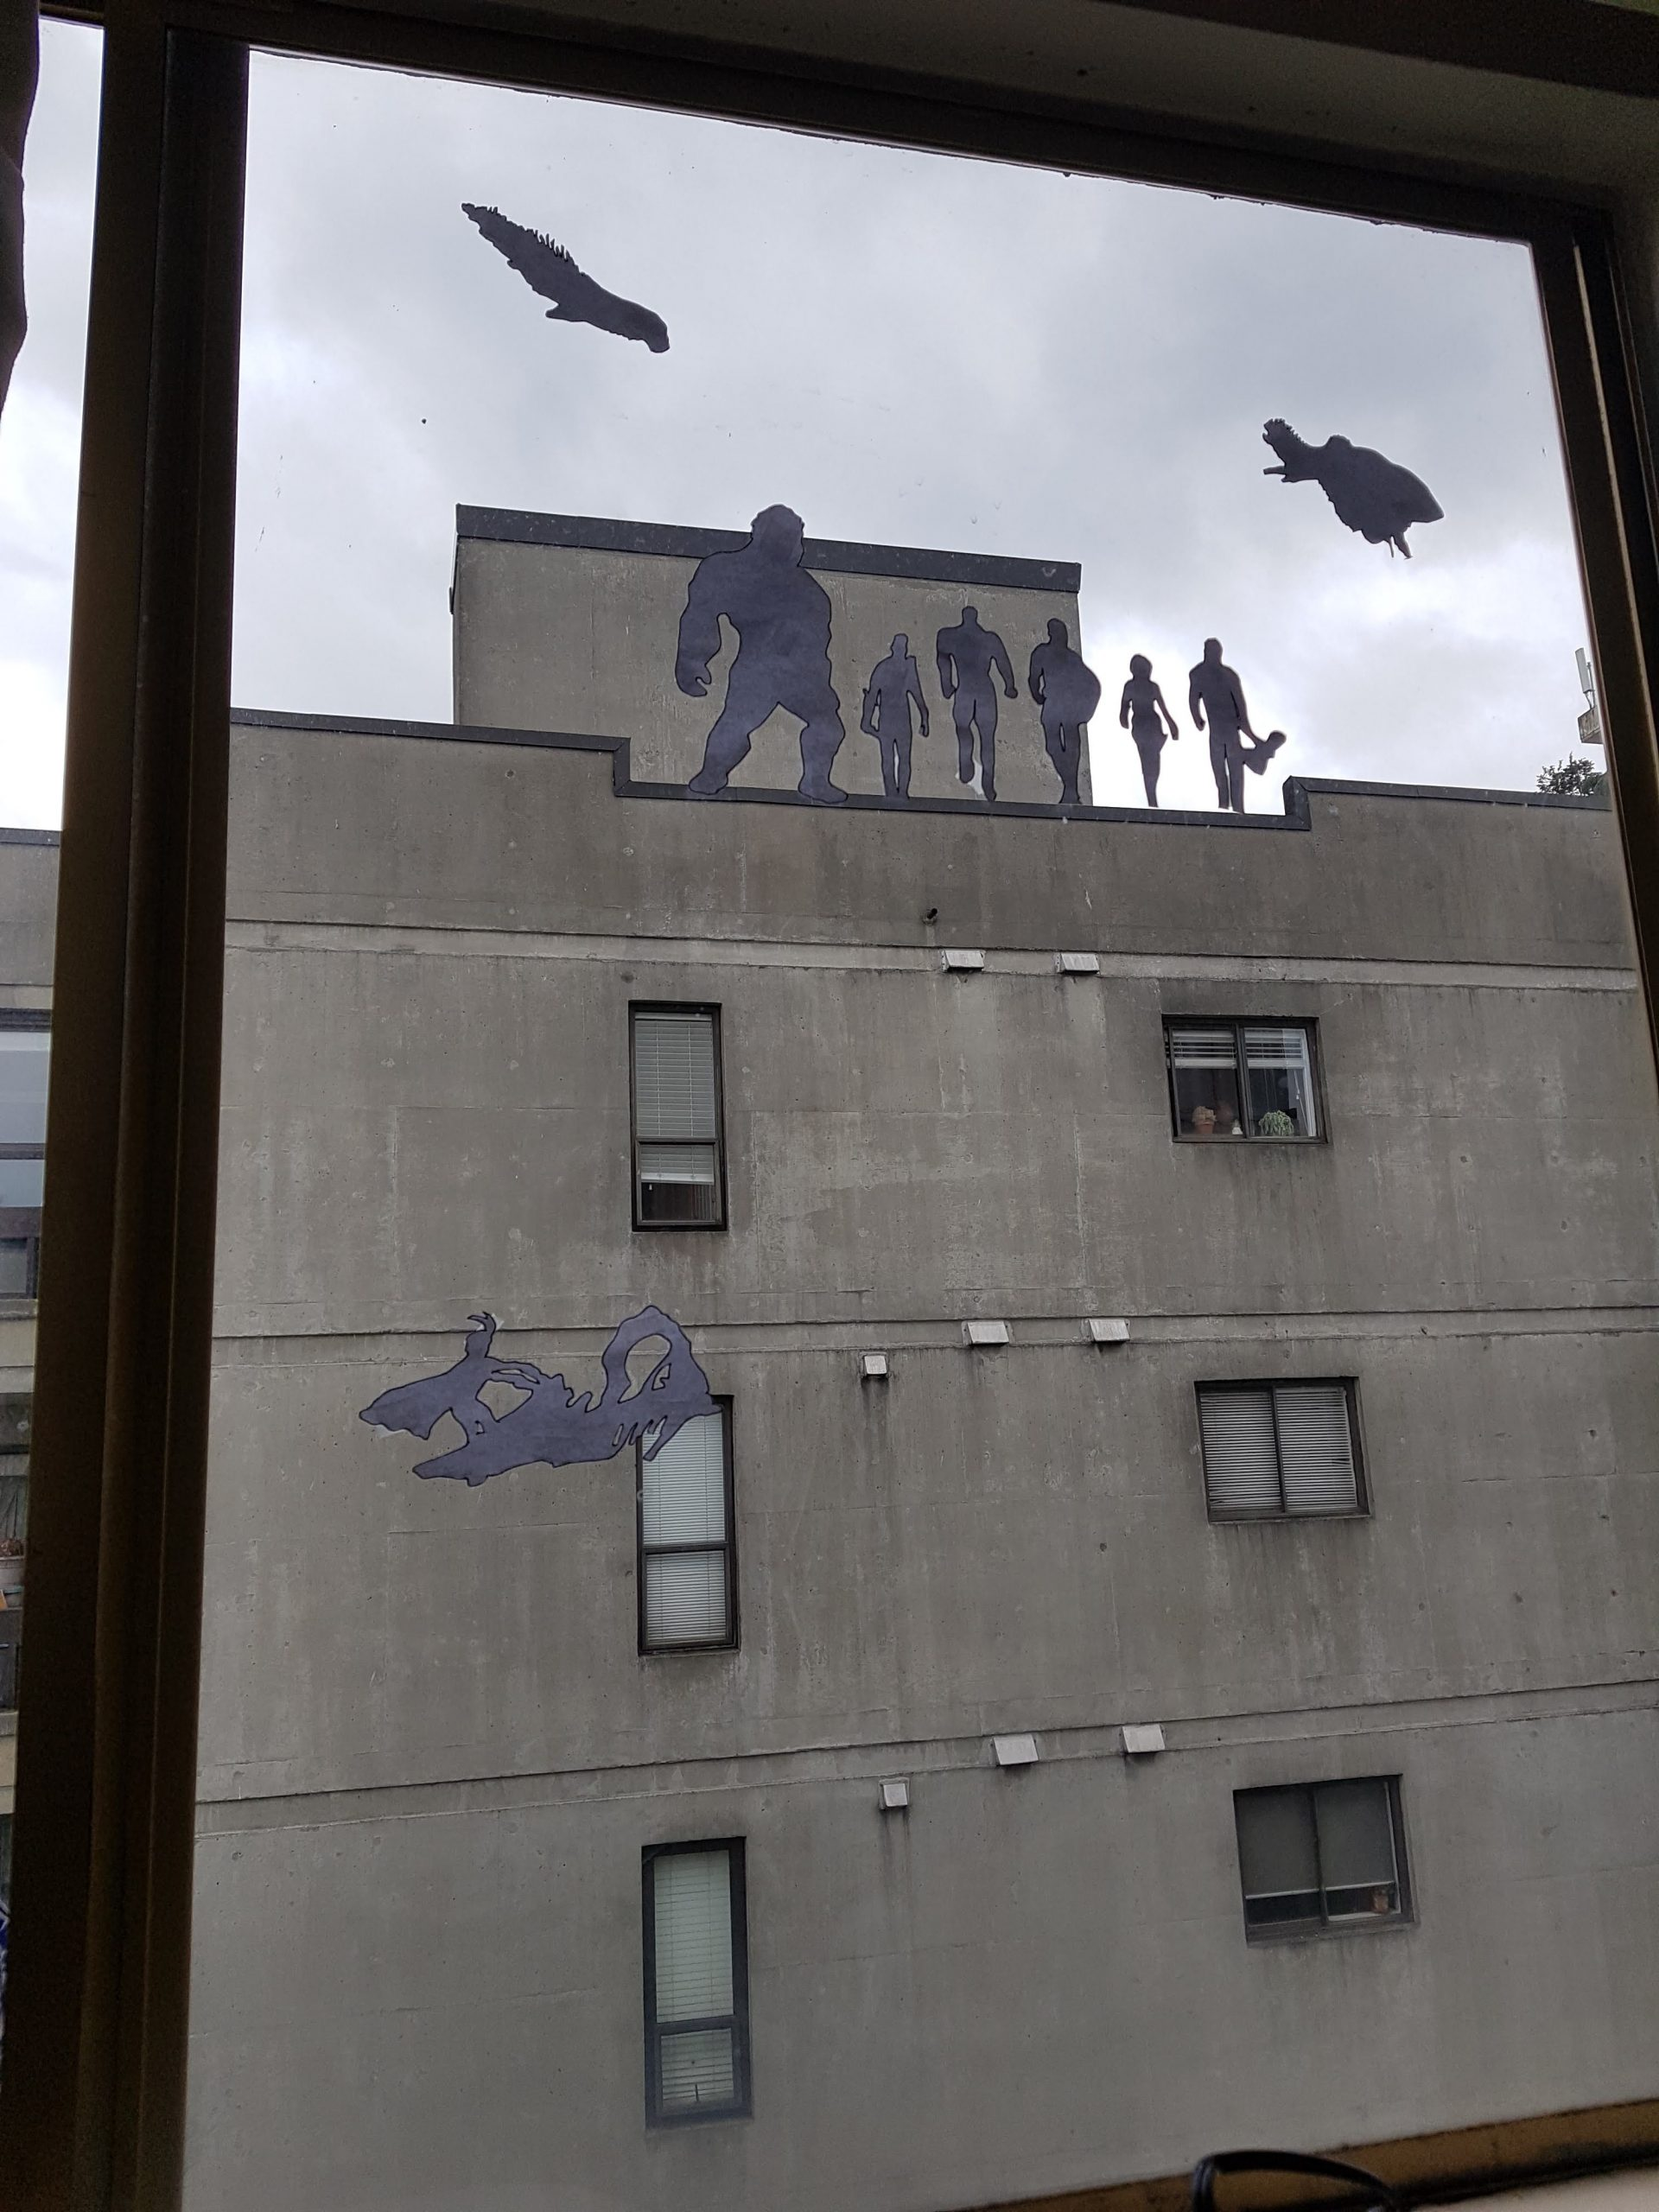 The image is shot from inside a building through a window. A concrete building is shown with the silhouettes of the Avengers standing on the roof.